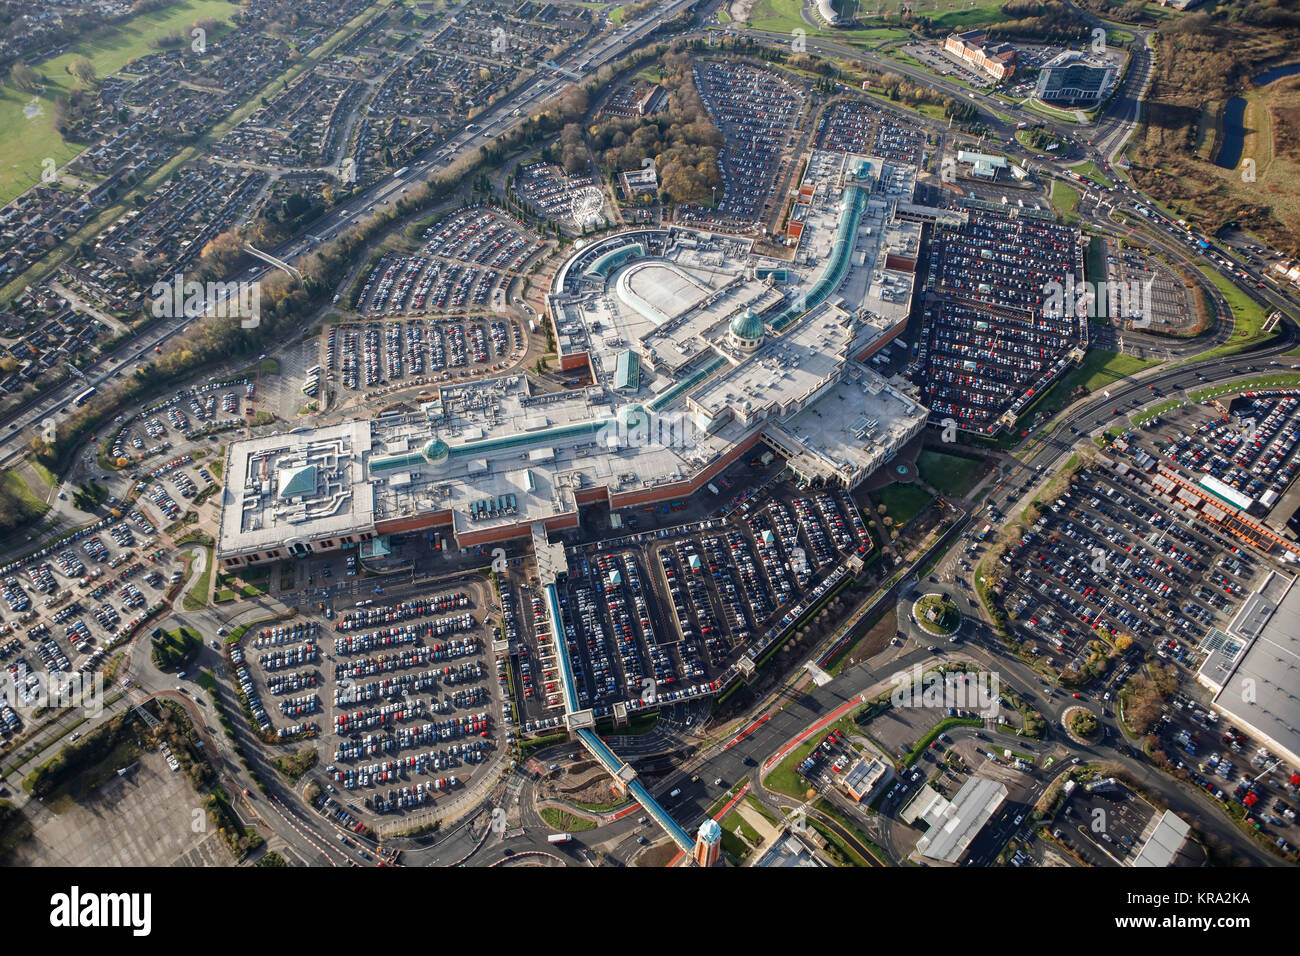 An aerial view of the Trafford Centre, and out of town shopping centre in Manchester - Stock Image